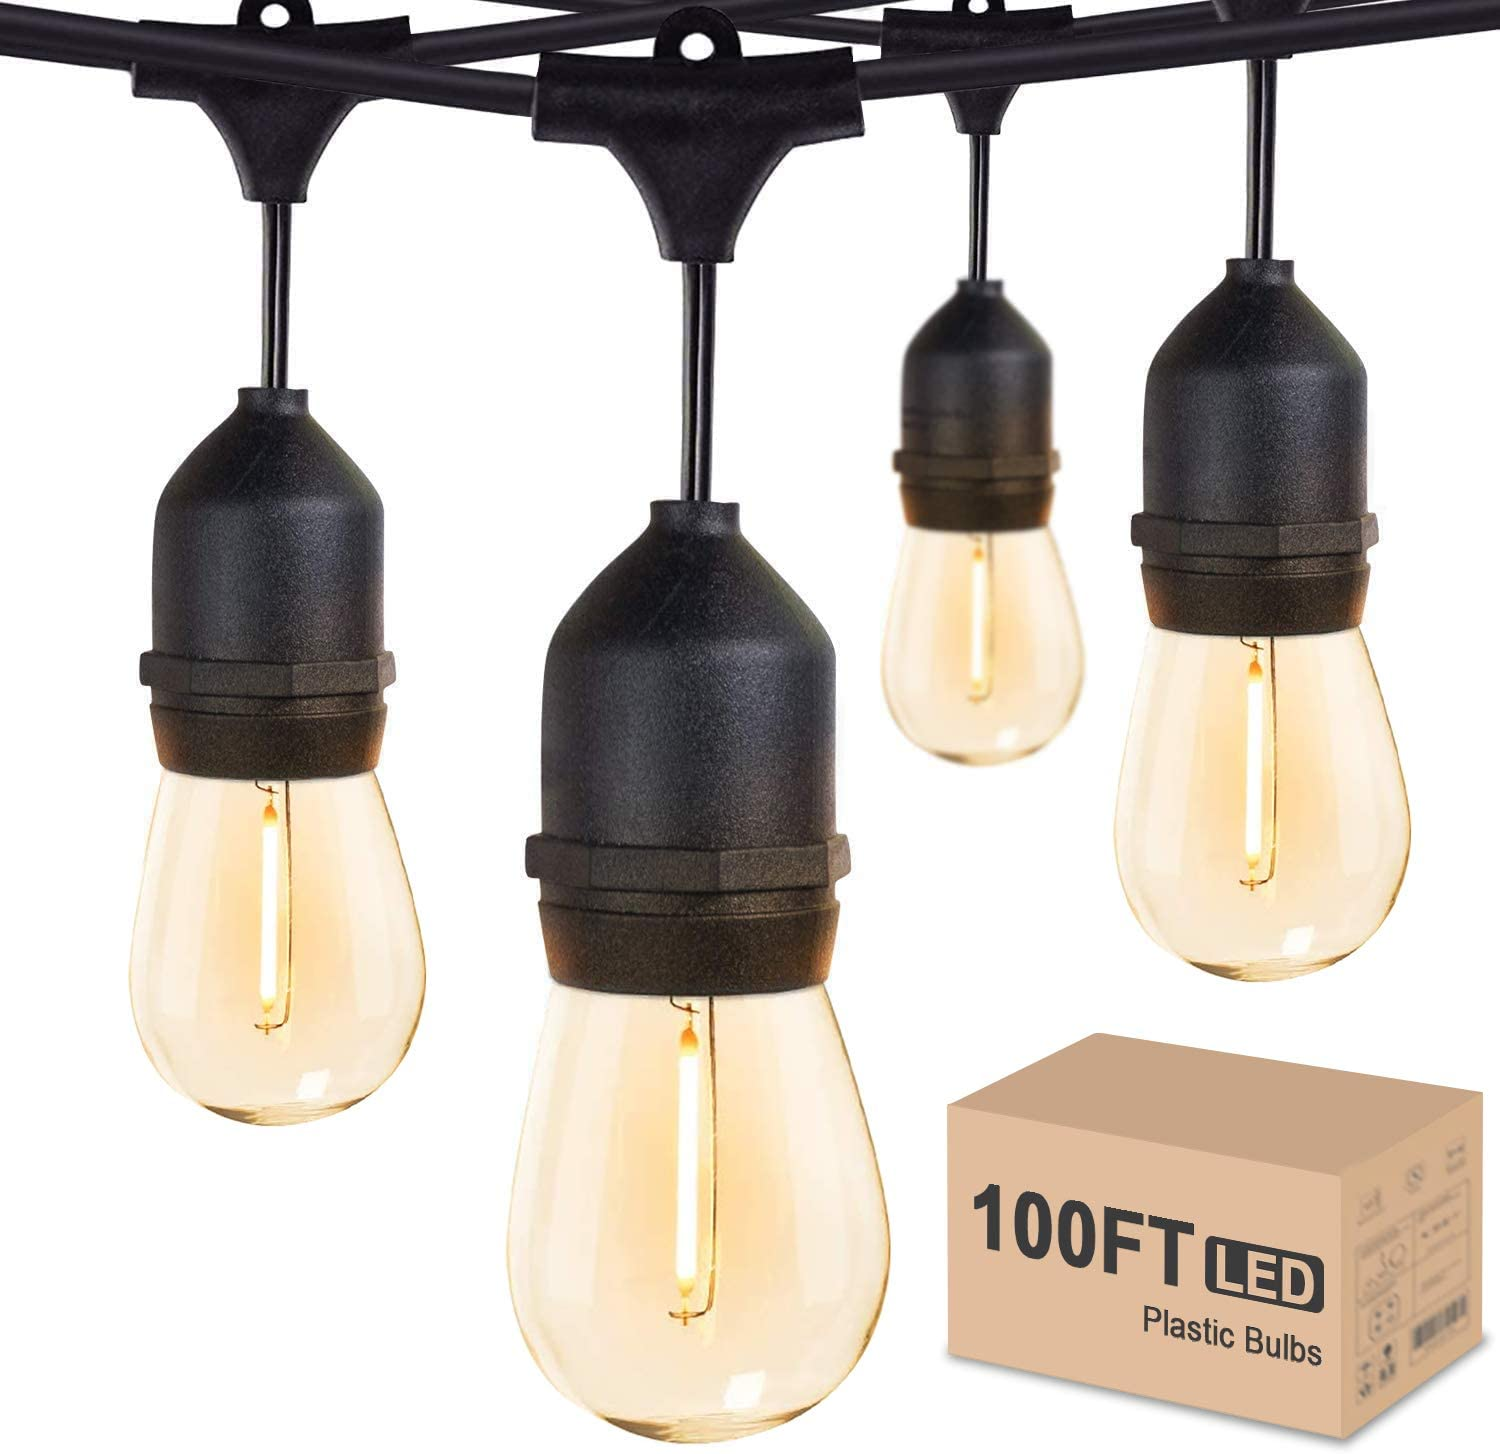 Outdoor String Lights LED 100FT Commercial Grade Heavy Duty Light String Lights with 30 Sockets 32 Shatterproof Plastic Bulbs Include 2 Spare S14 Dimmable Edison Bulbs Patio Market Cafe String Lights - -